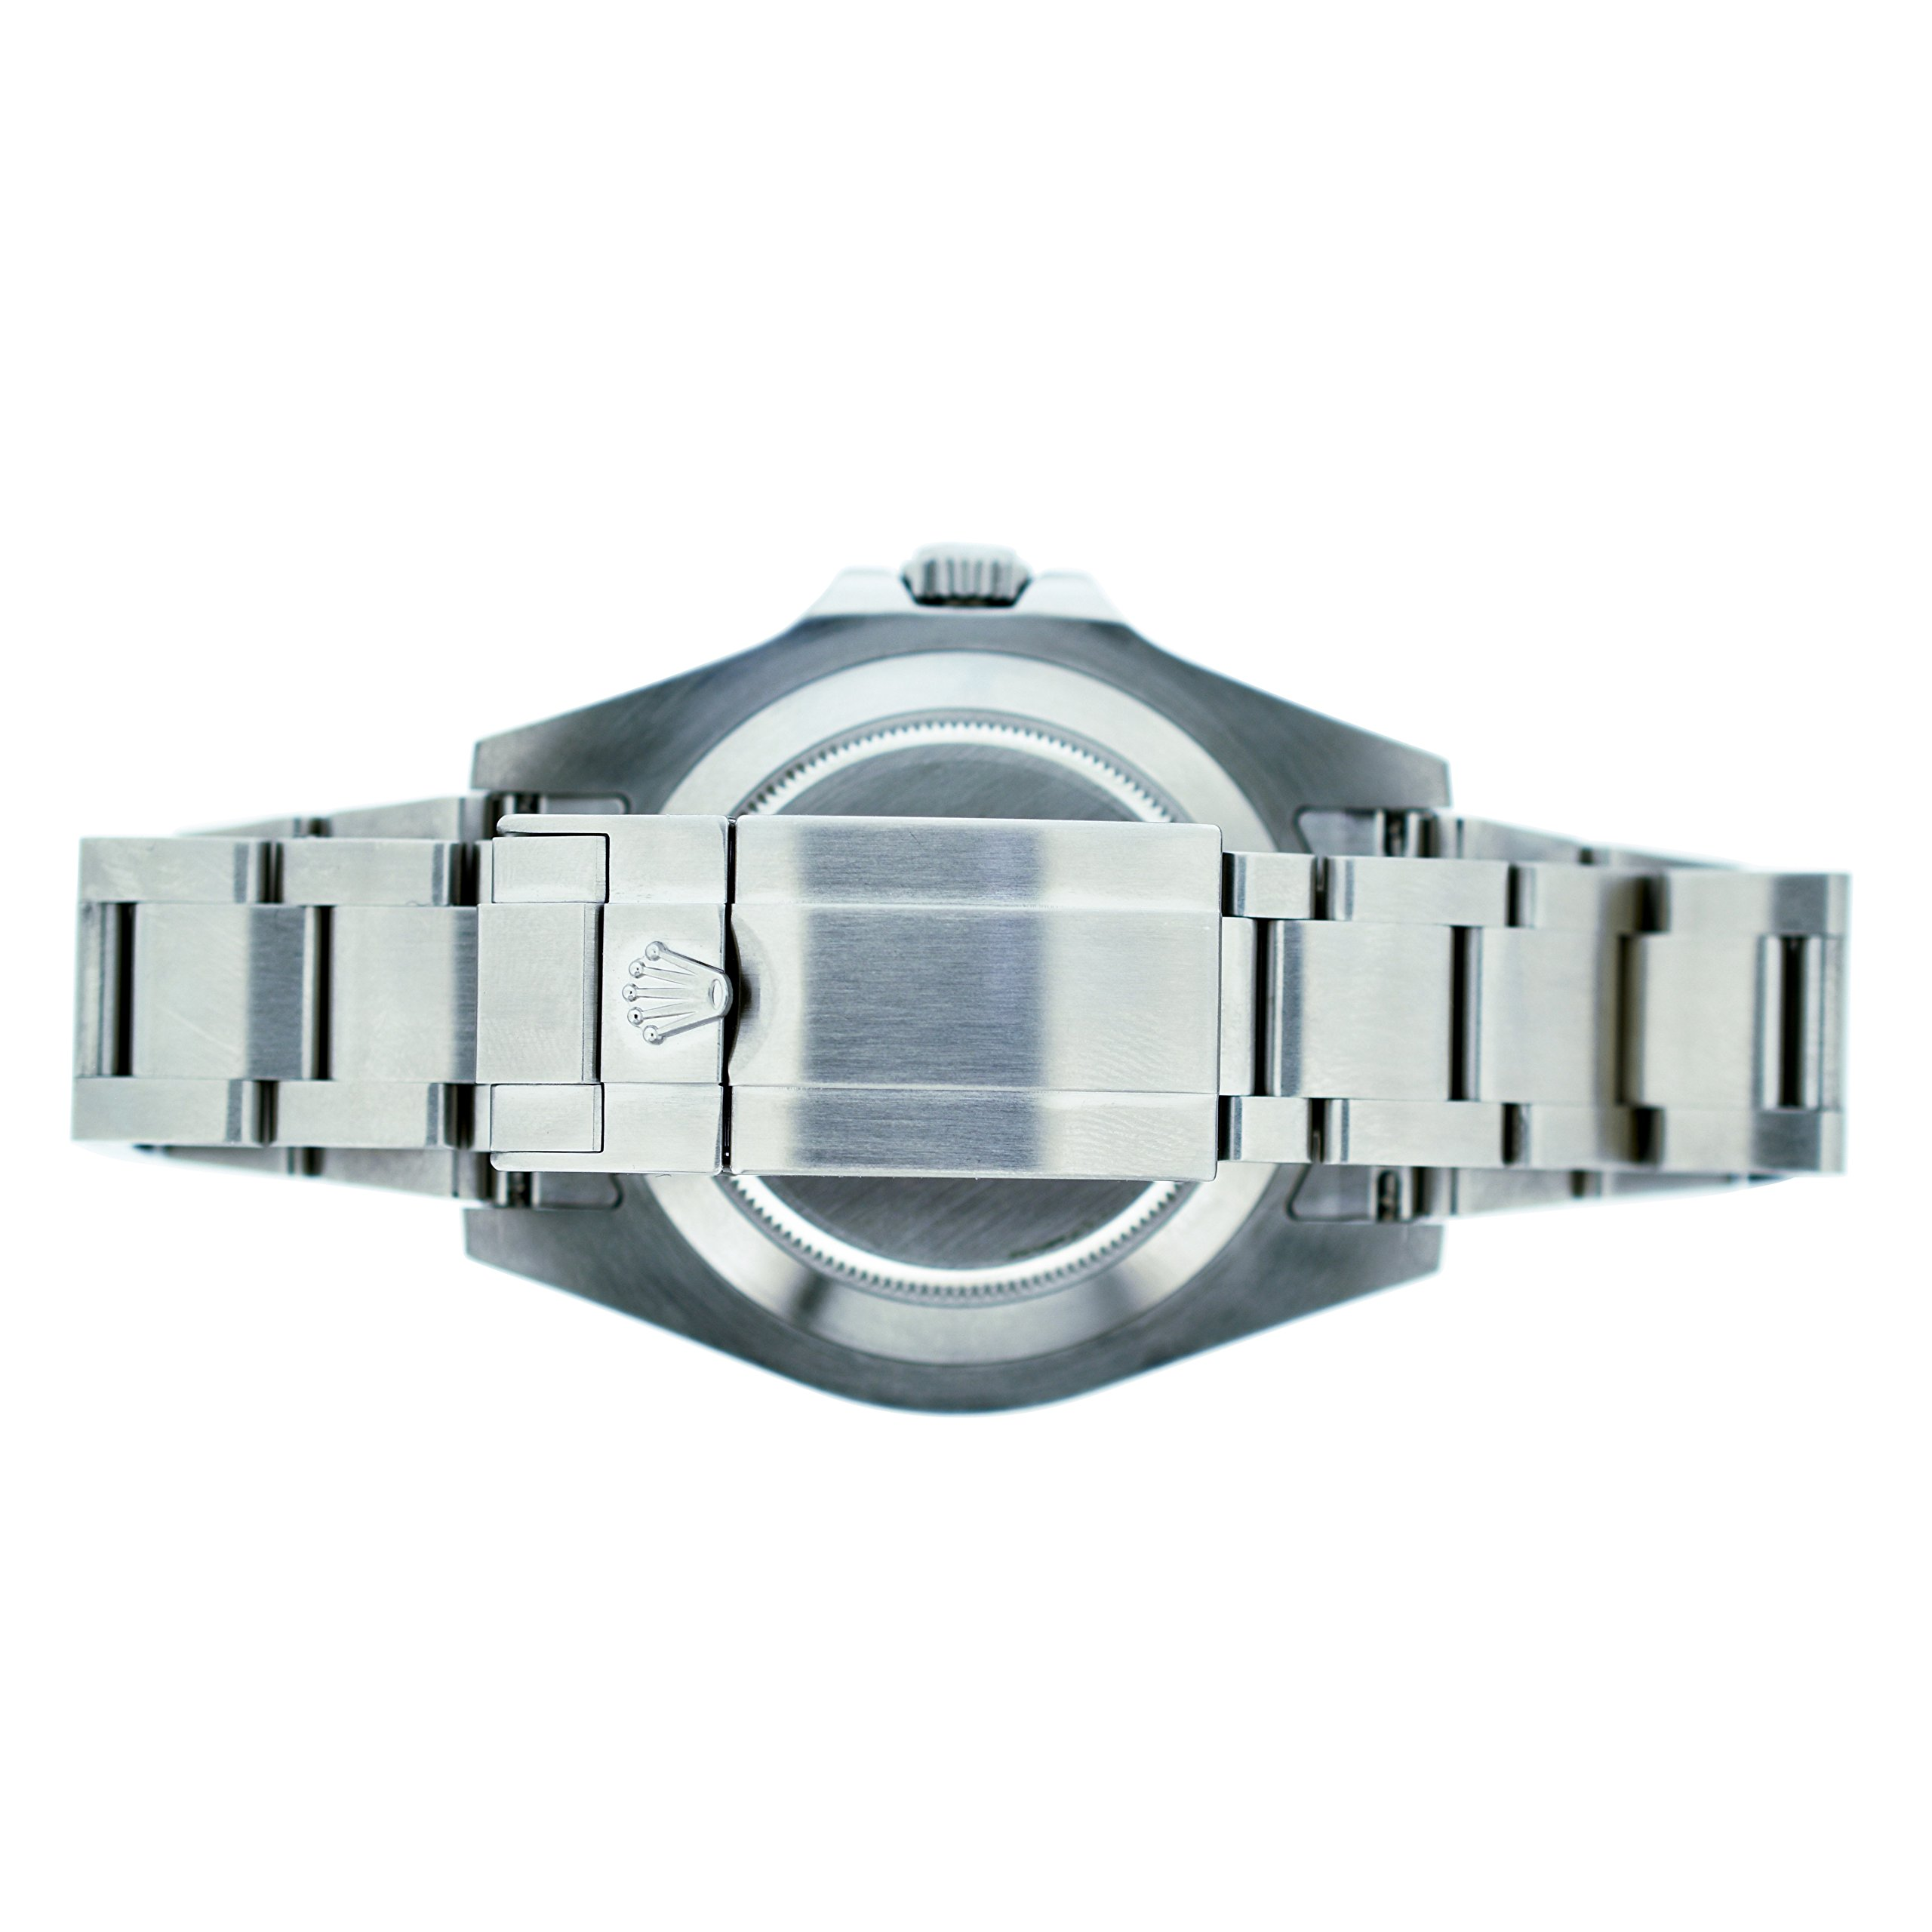 Rolex Explorer II automatic-self-wind mens Watch 216570 (Certified Pre-owned) by Rolex (Image #1)